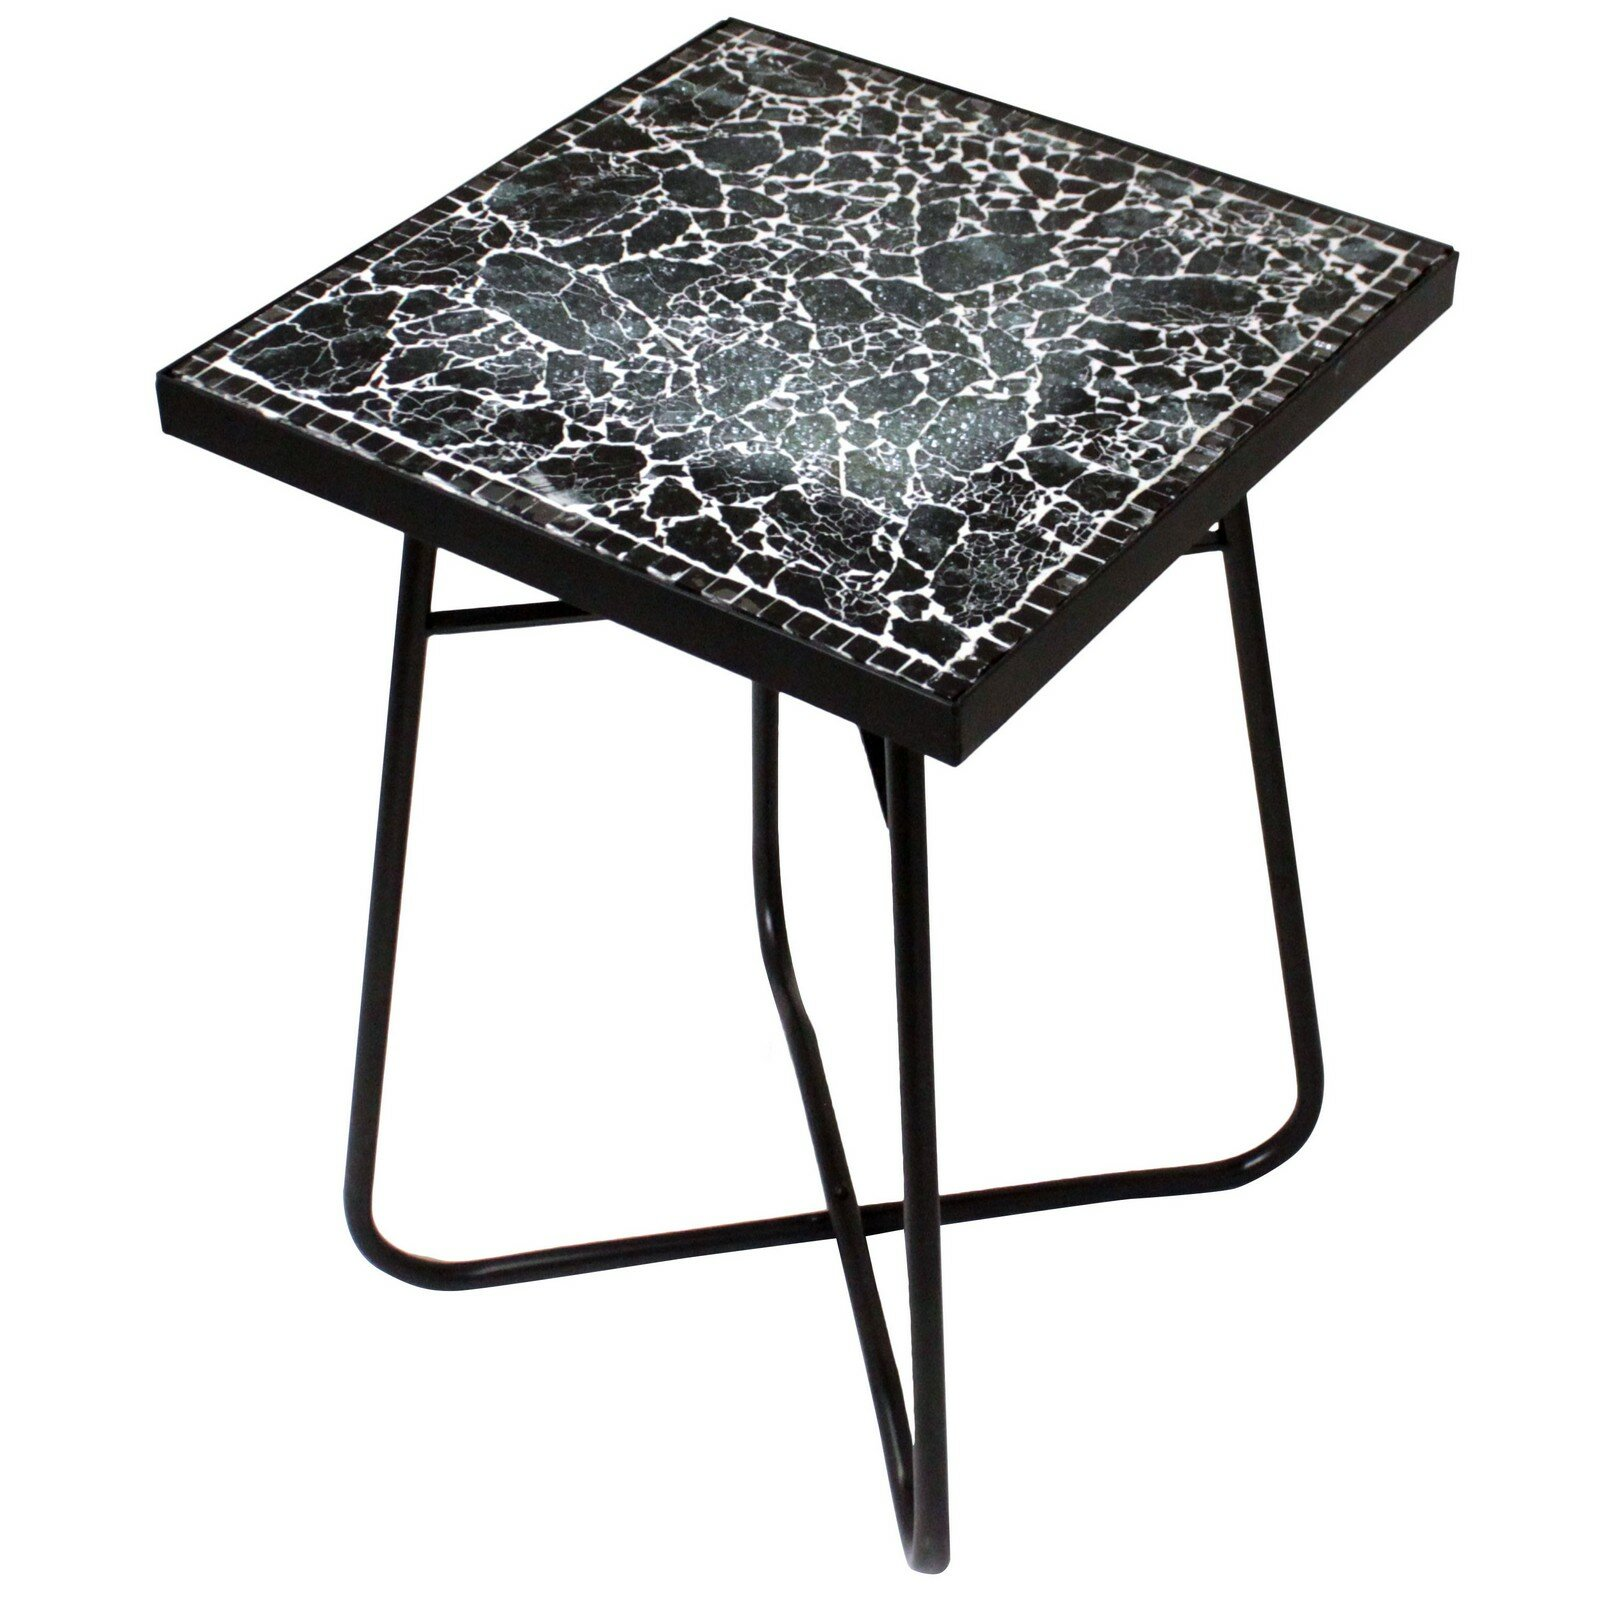 Urban Designs Cracked Black Mosaic End Table  Wayfair. Tracing Table. Dining Table For Small Space. How To Keep Office Desk Organized. Counter Height Round Dining Table. Round Counter Height Table And Chairs. 48 Drawer Storage Cabinet. Glasgow Airport British Airways Desk. White Office Desk Chair